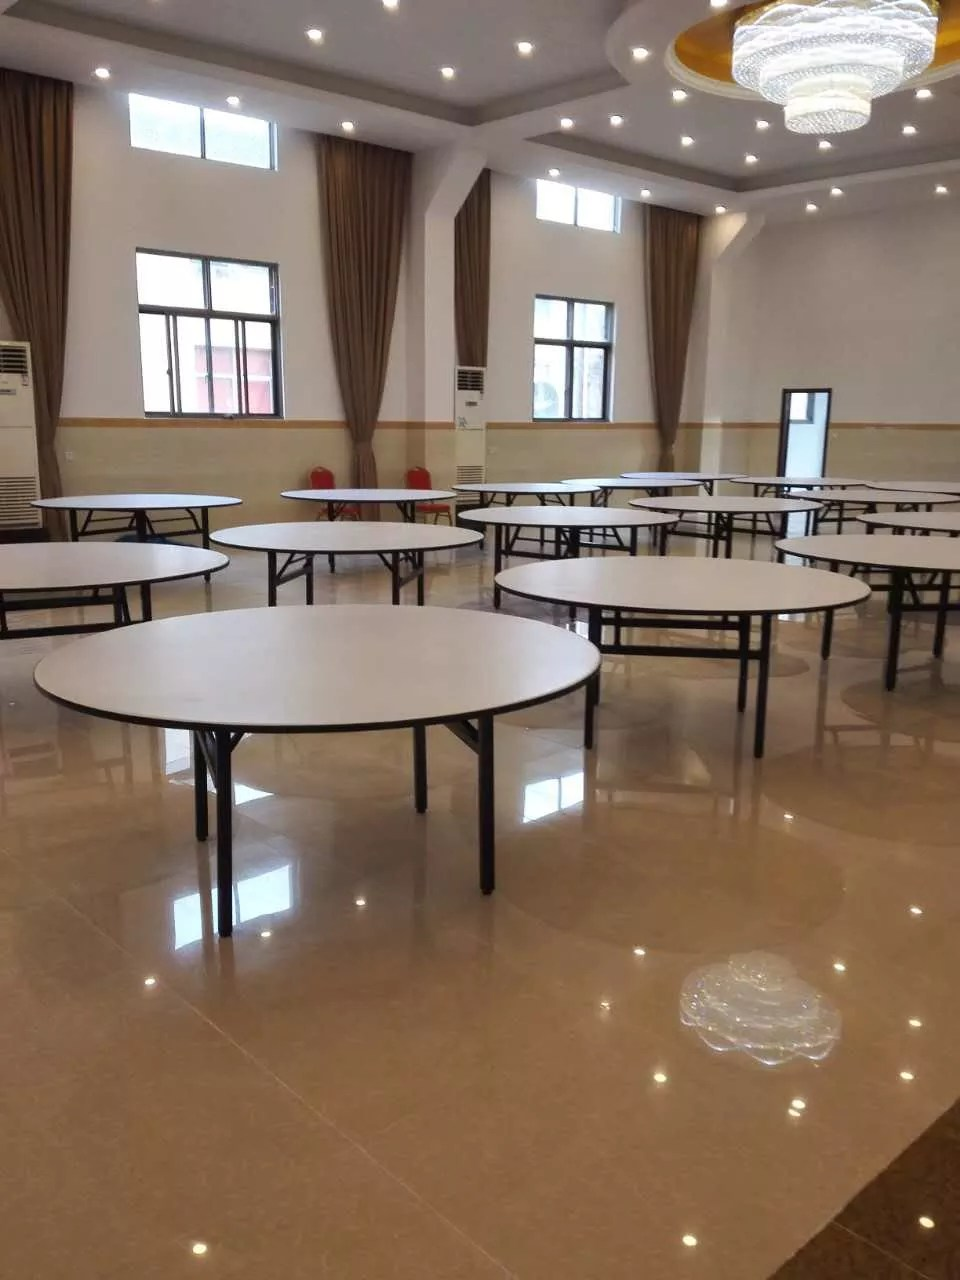 Table Pvc Exterieur Banquet Ronde Table Pliante De Table En Pvc Extérieur De Table De Mariage Buy Table Pliante Table Ronde Table En Pvc Product On Alibaba